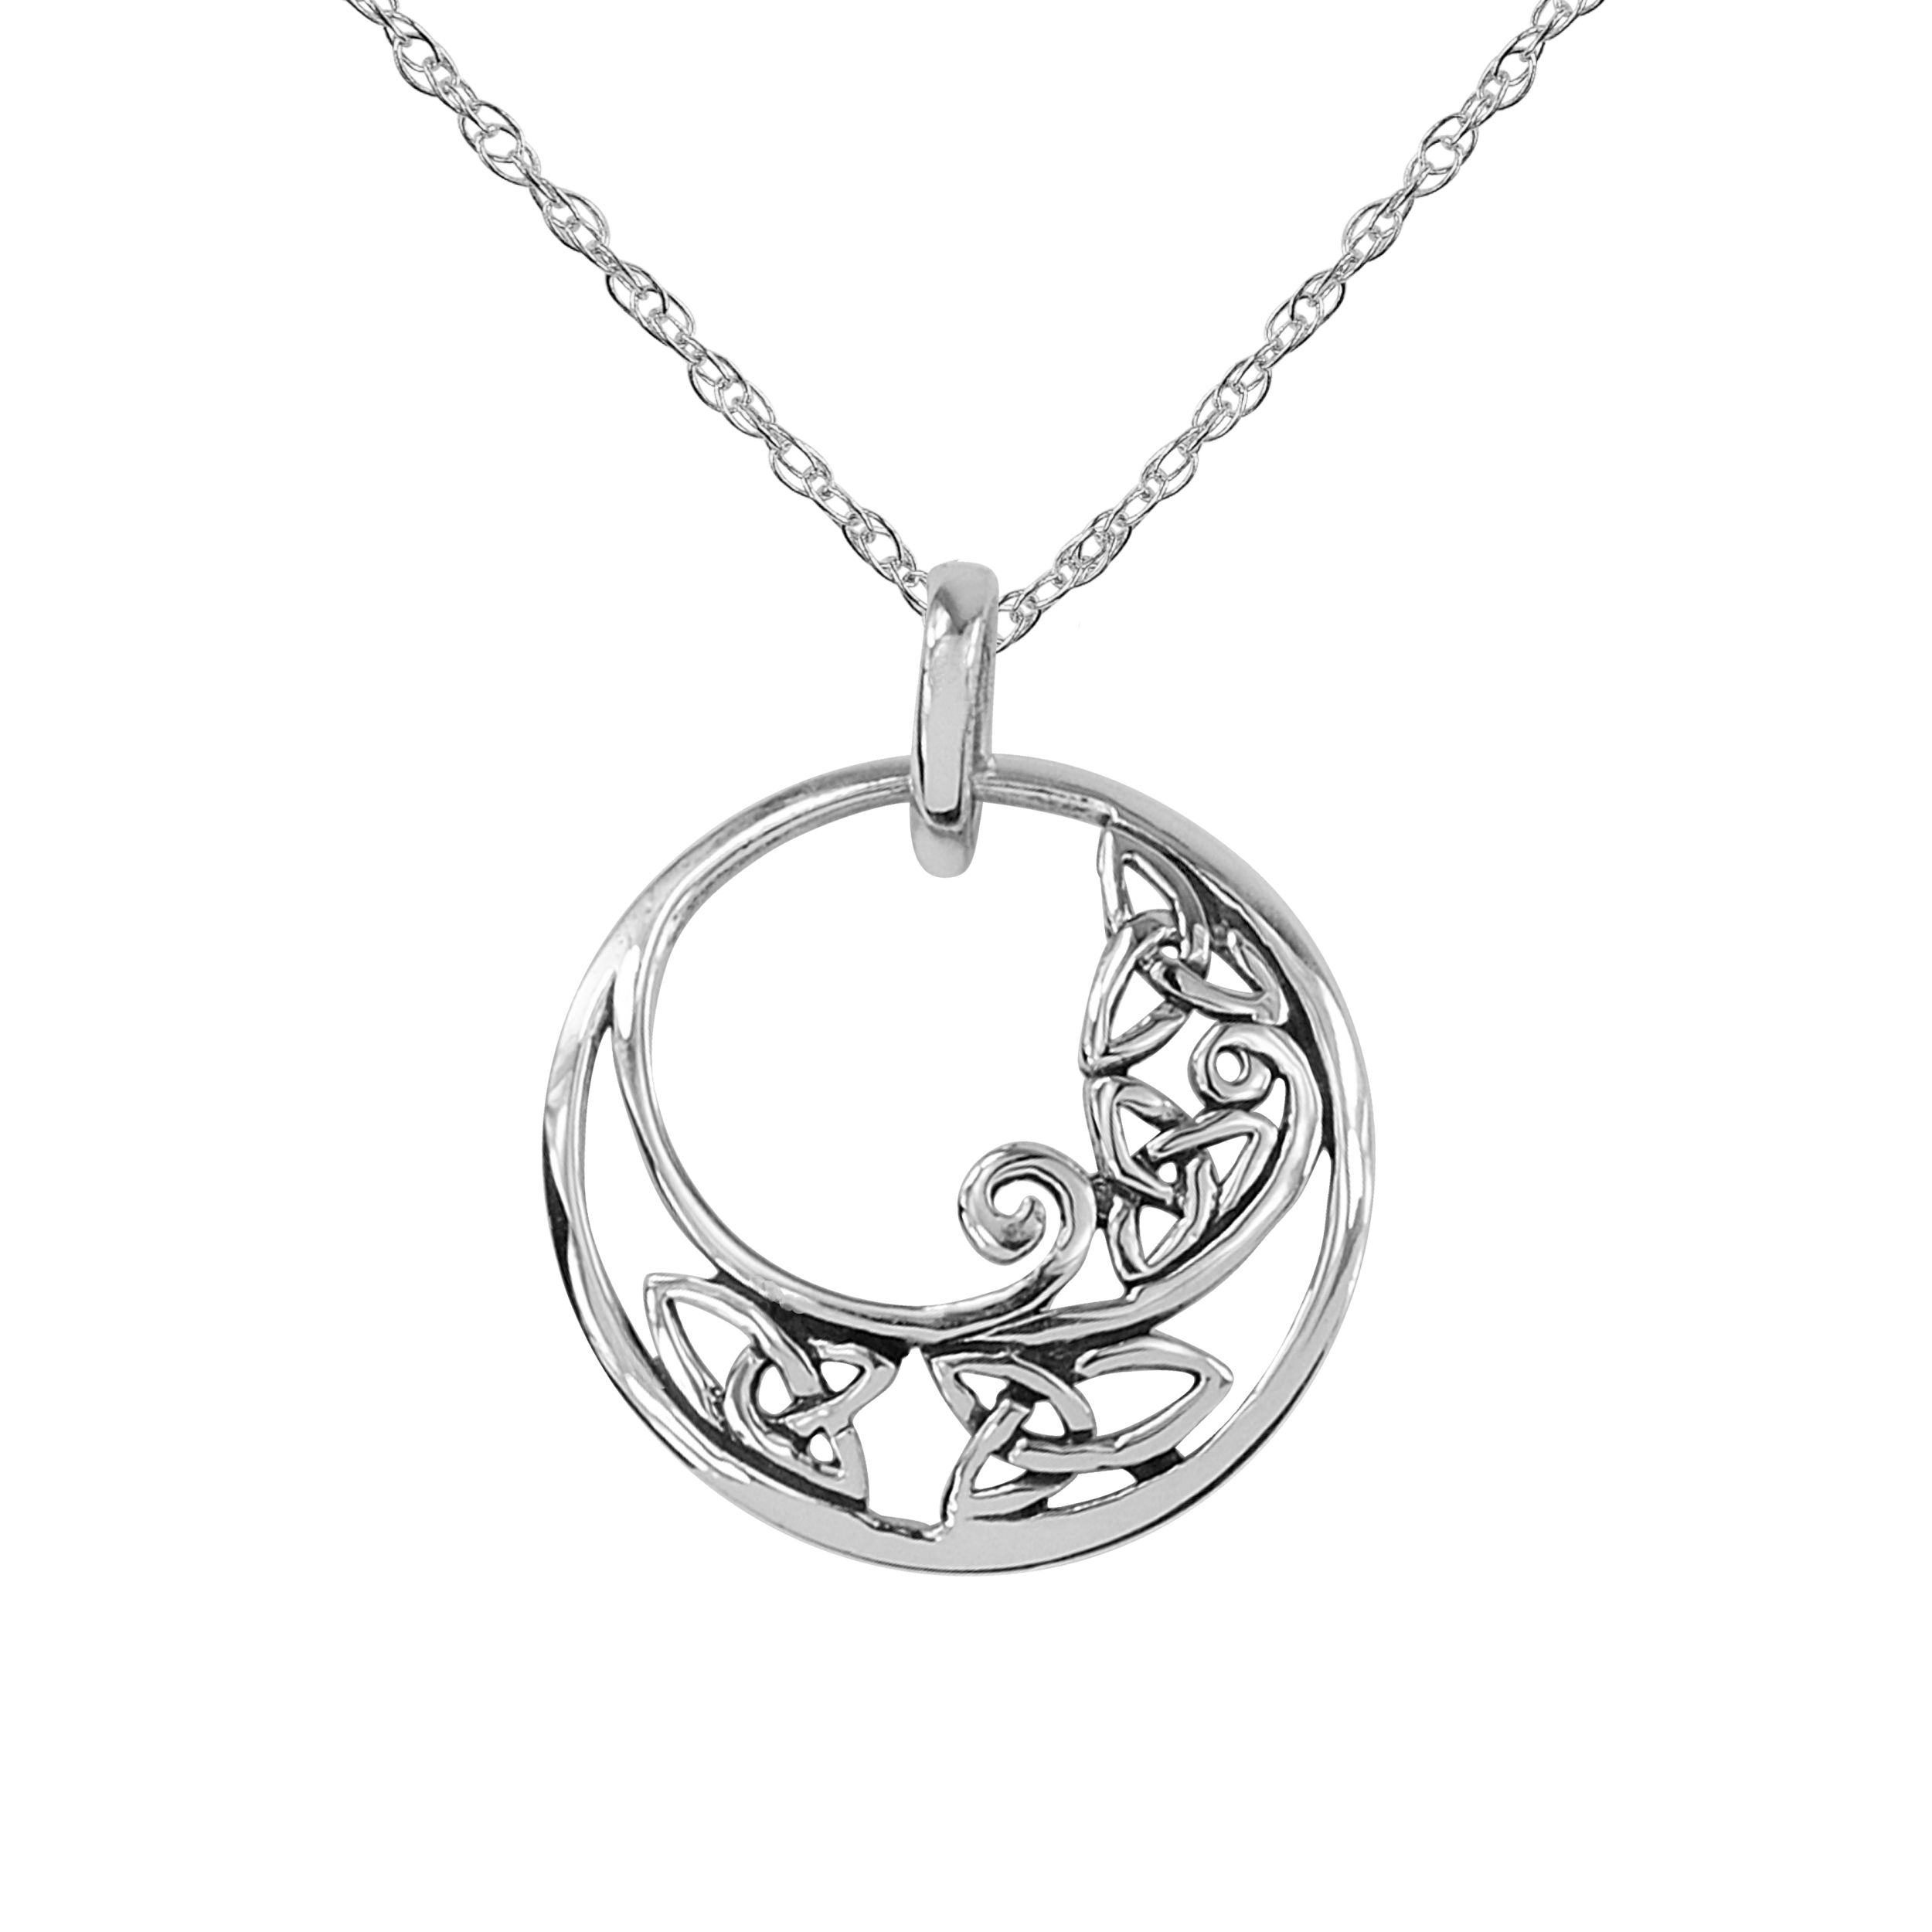 charm life necklace sterling of pendant silver celtic jewelry pewter tns tree cotton itm